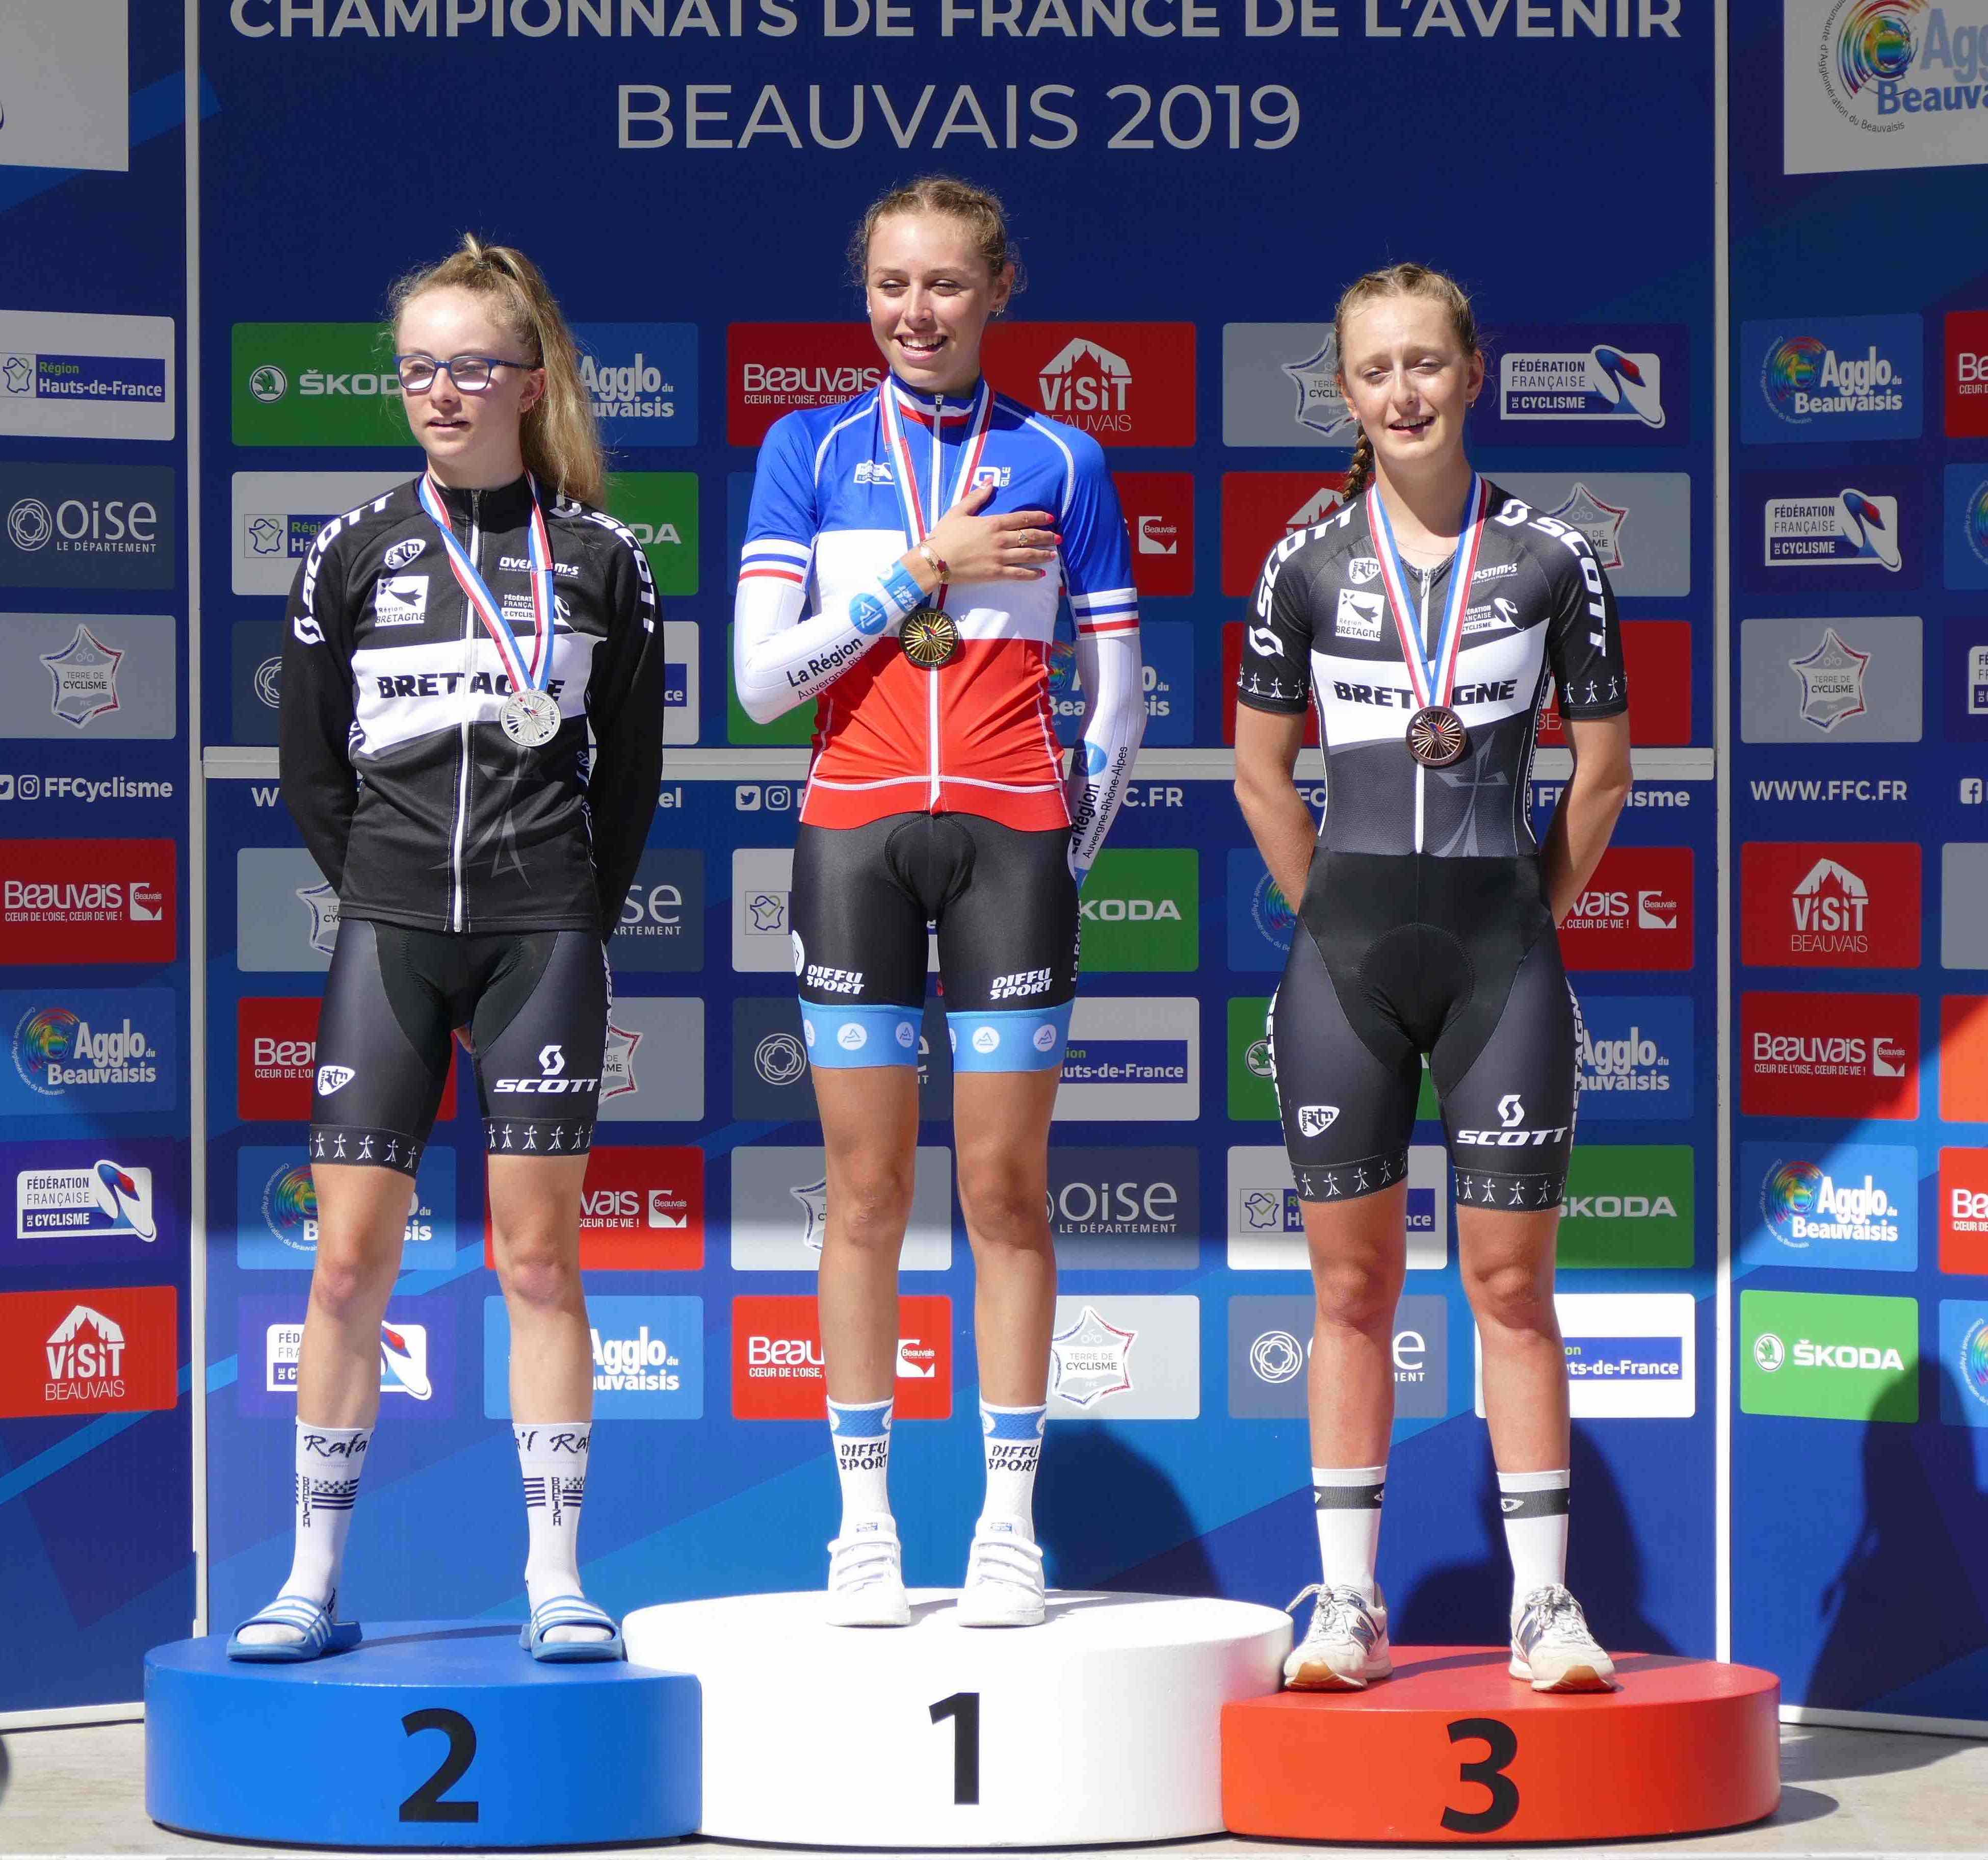 France-2019-Maeva-podium-clm